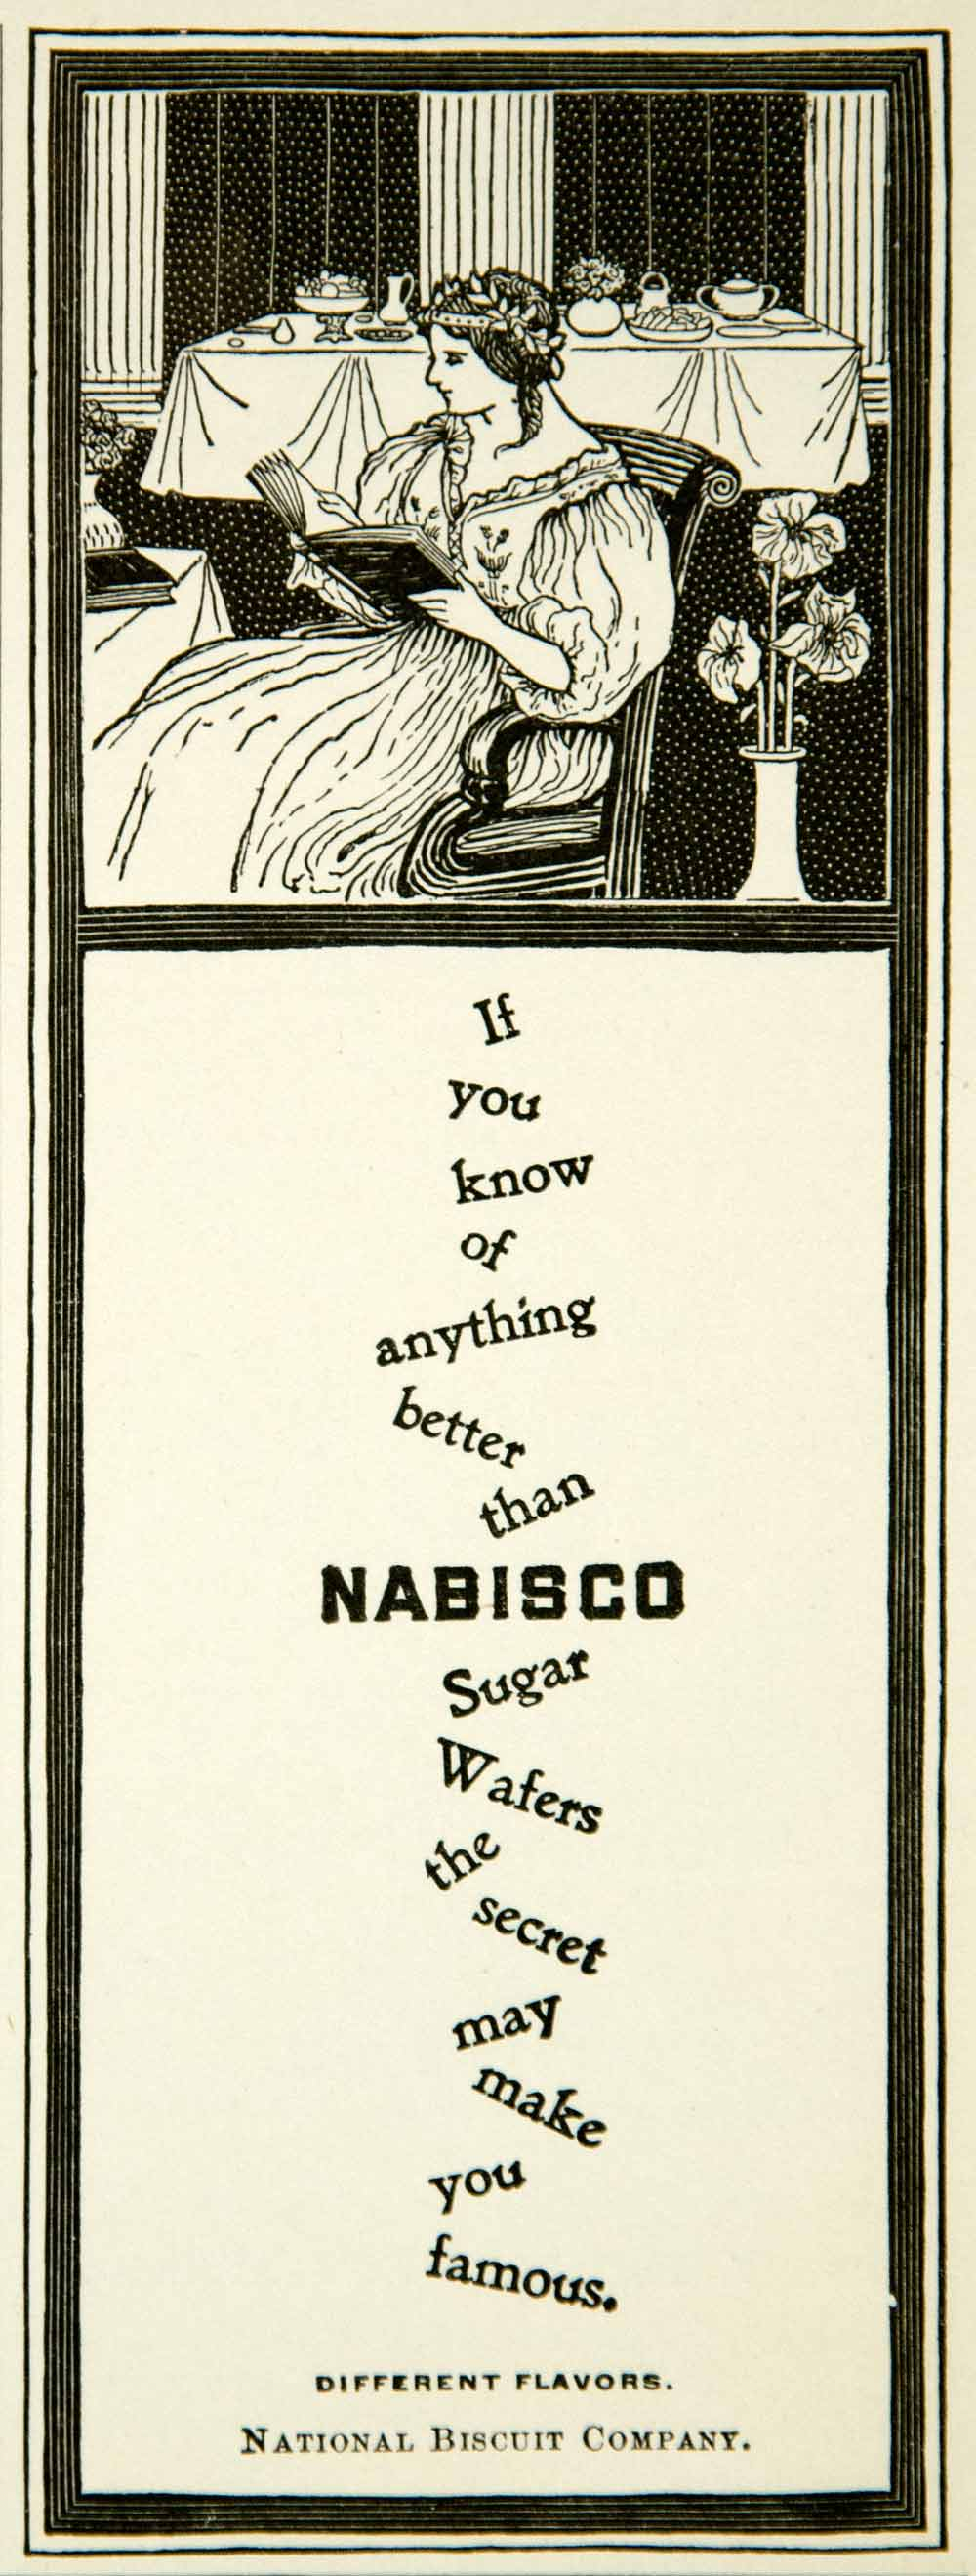 1902 Ad Nabisco Sugar Wafers Victorian Art Nouveau Food Grocery Woman Meal YYC1